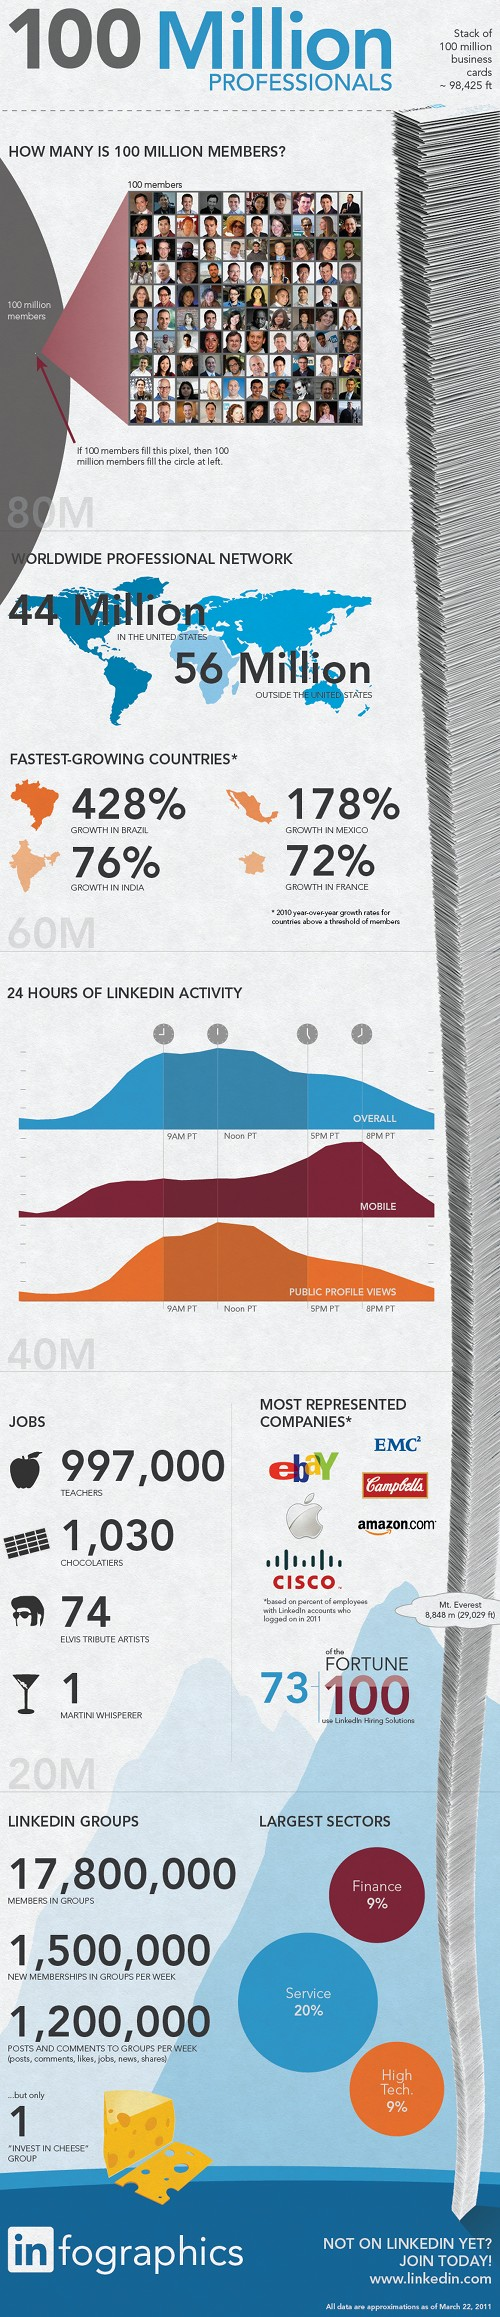 LinkedIn 100m users infographic